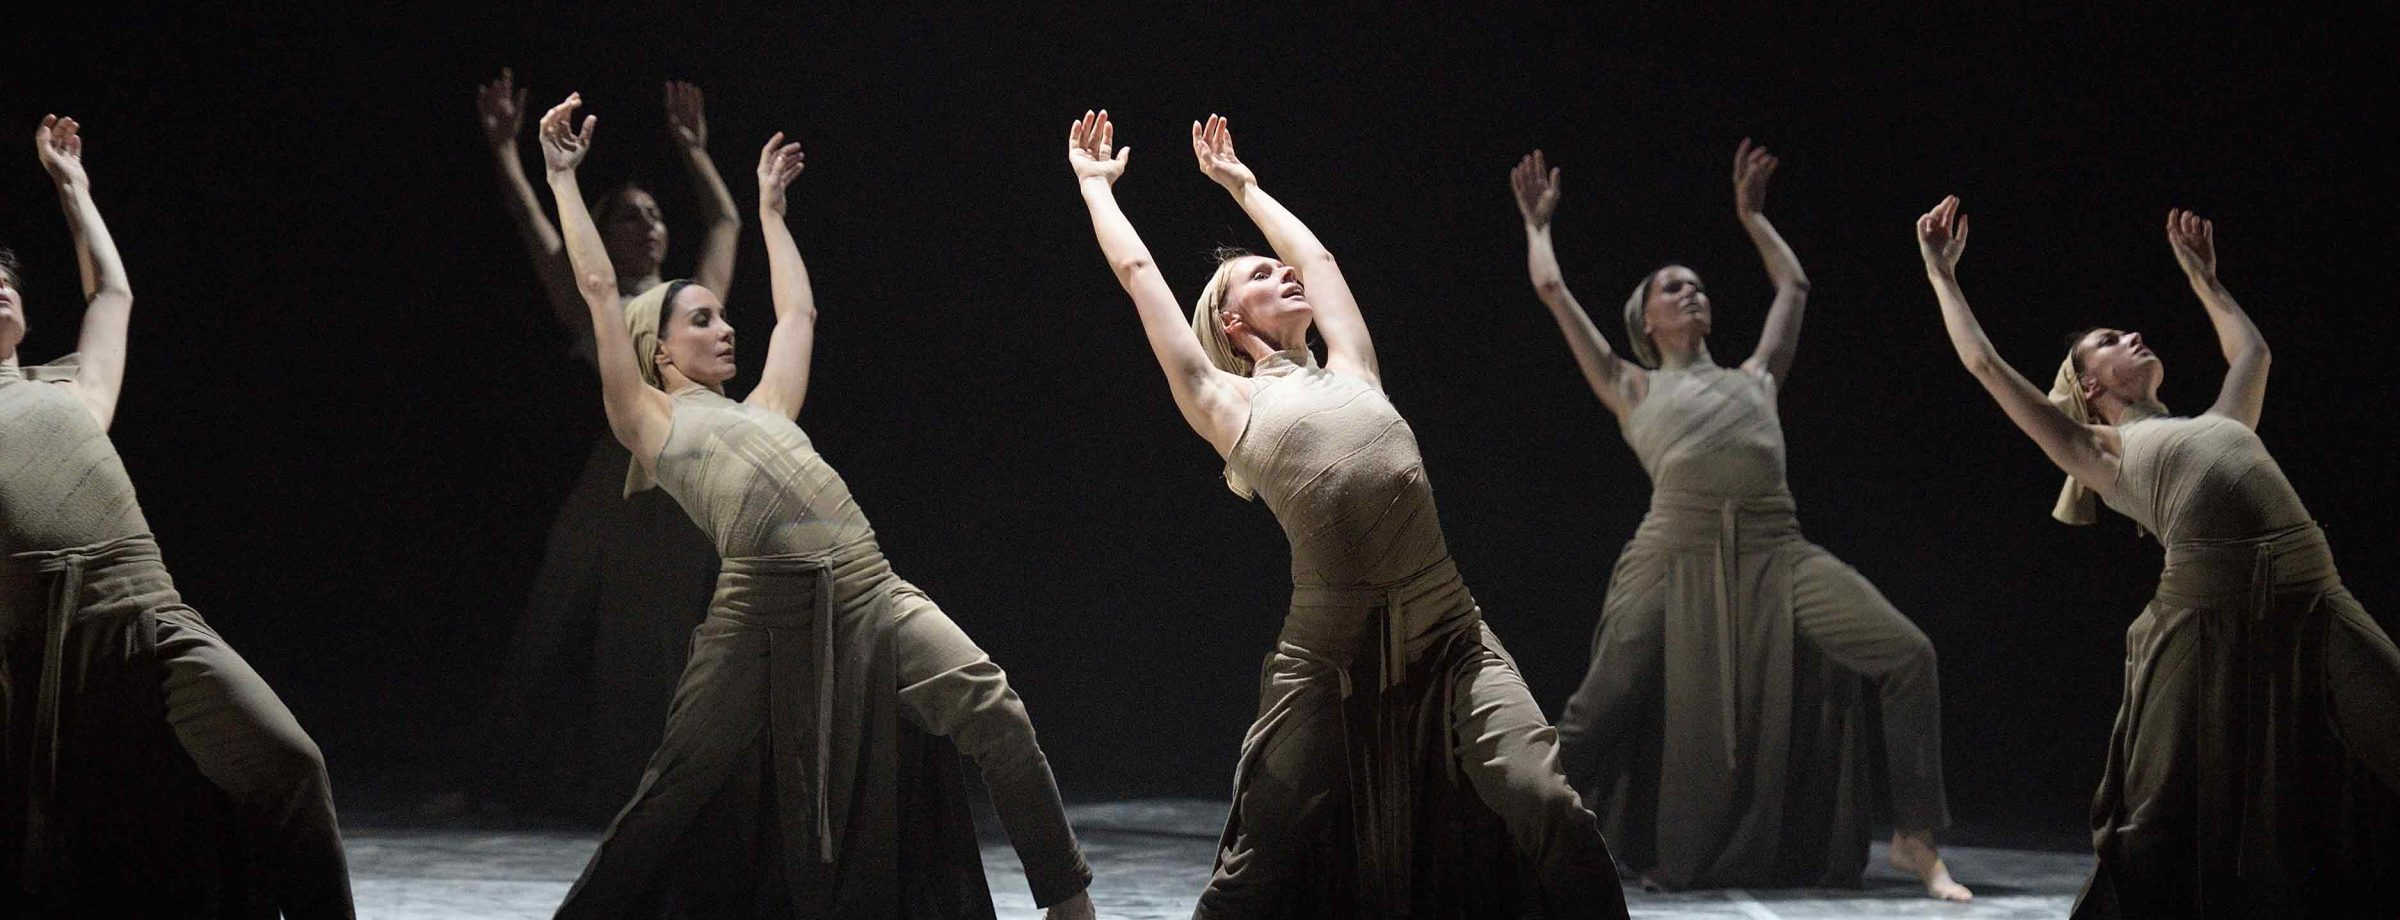 English-National-Ballet's-Lest-We-Forget---Dust-by-Akram-Khan-(c)-Laurent-Liotardo-(6)_WEB